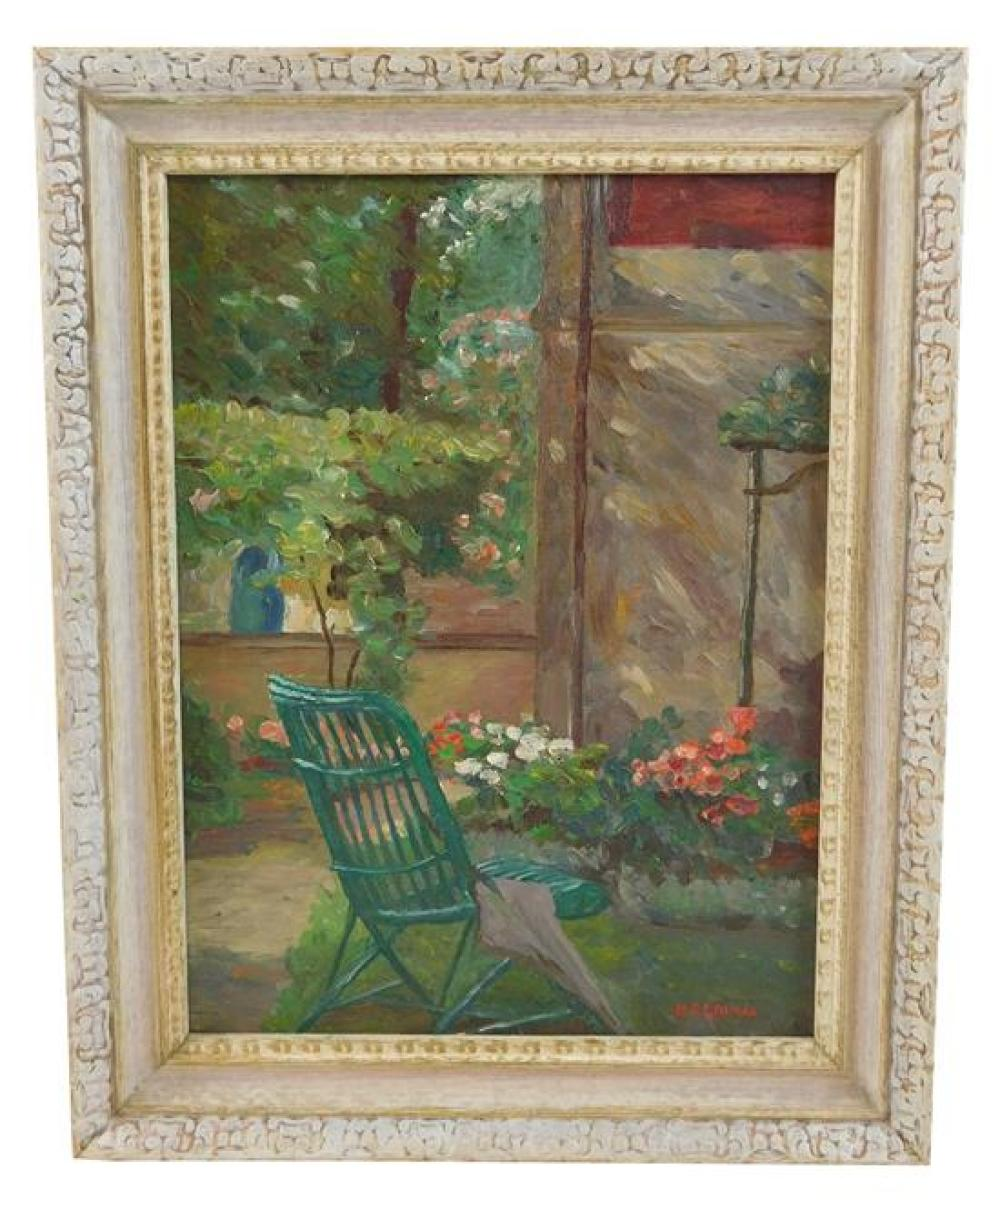 Mildred Gehman (American, 1908-2006), oil on board, garden scene with green chair in foreground, signed lower right, not examined ou...